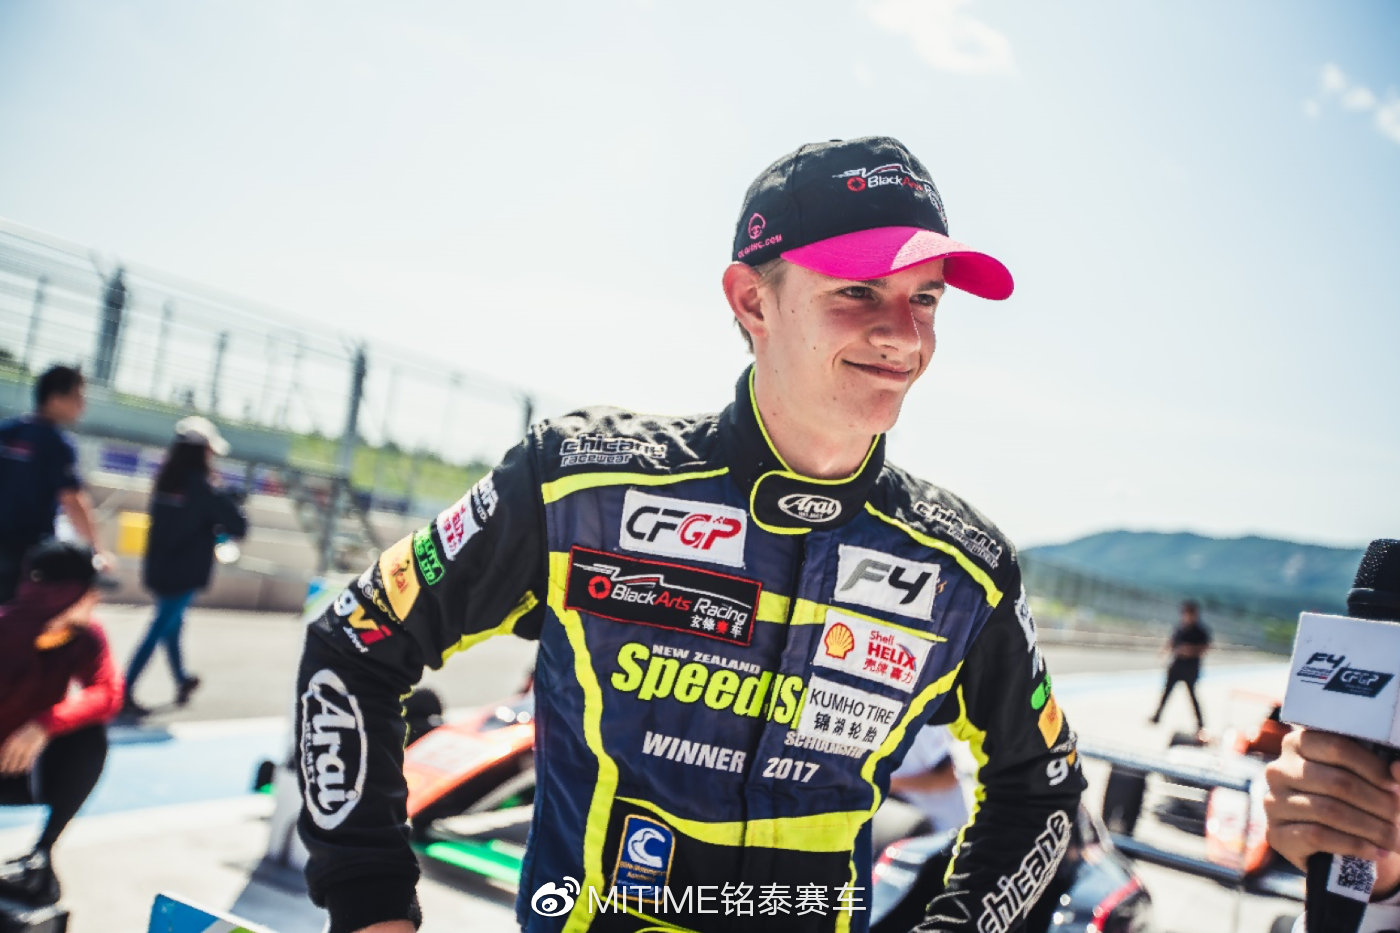 Can Conrad Clark take the championship in Shanghai? - CHINESE FORMULA 4